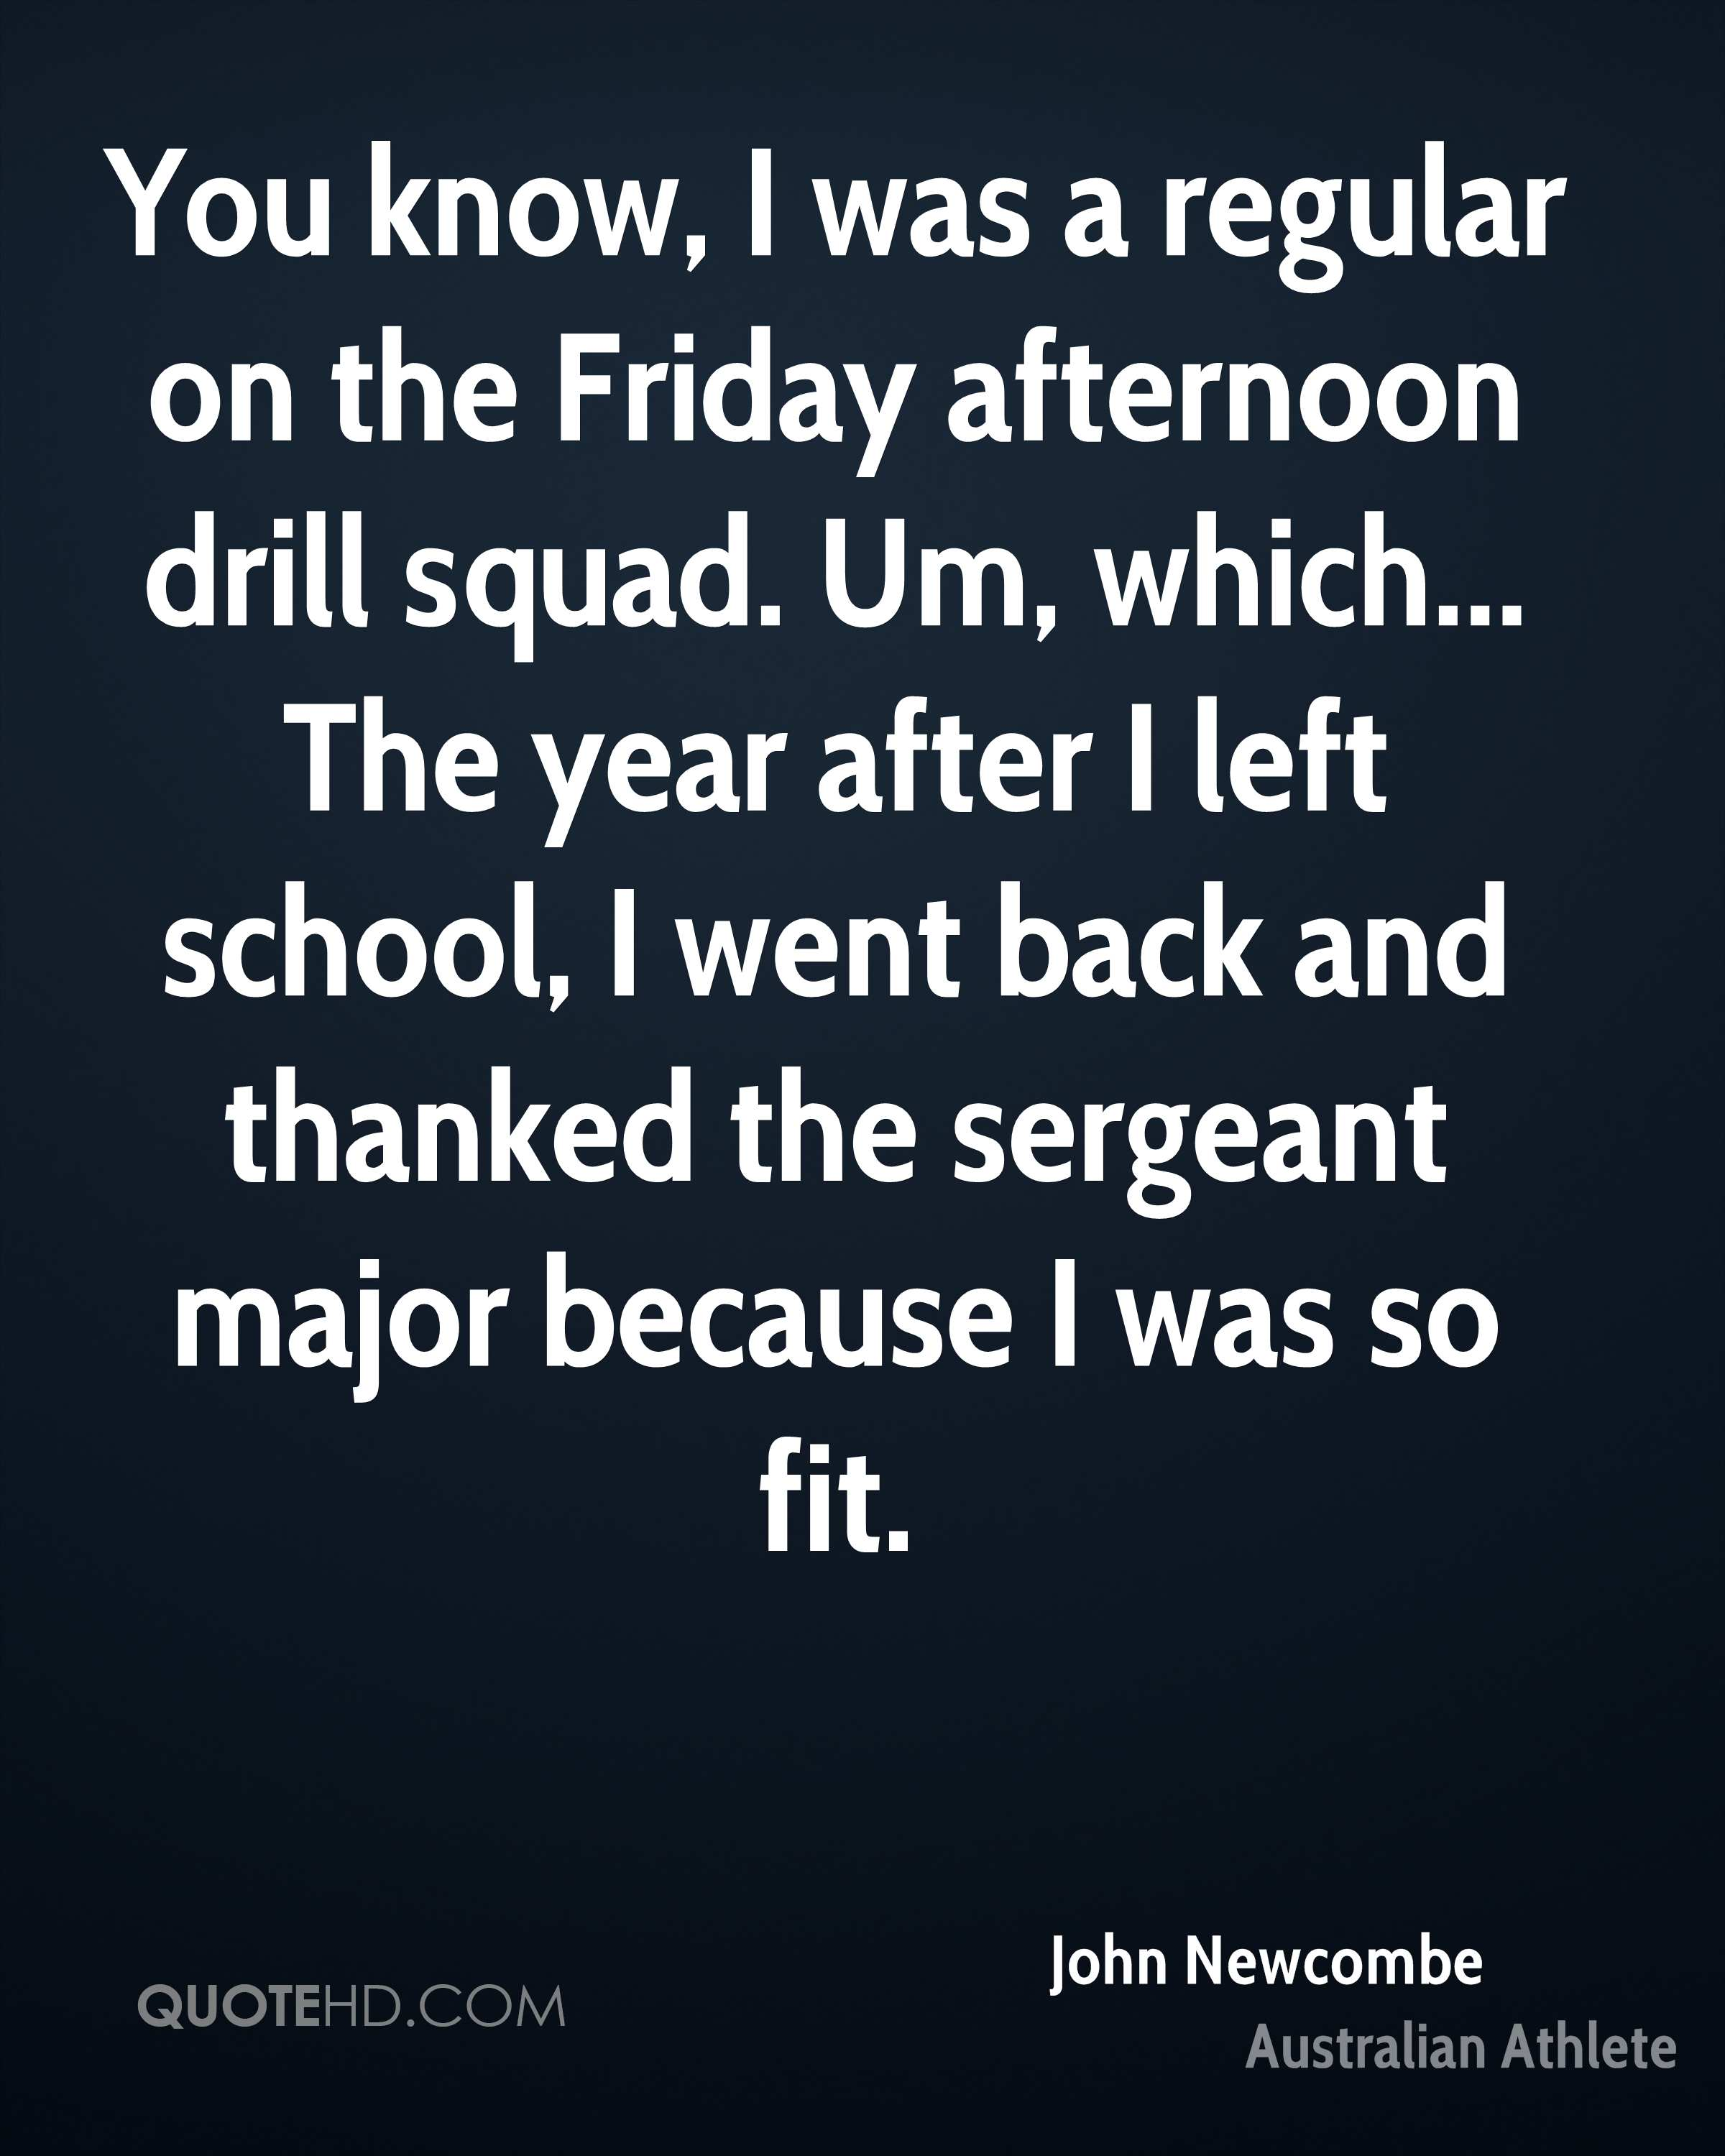 You know, I was a regular on the Friday afternoon drill squad. Um, which... The year after I left school, I went back and thanked the sergeant major because I was so fit.